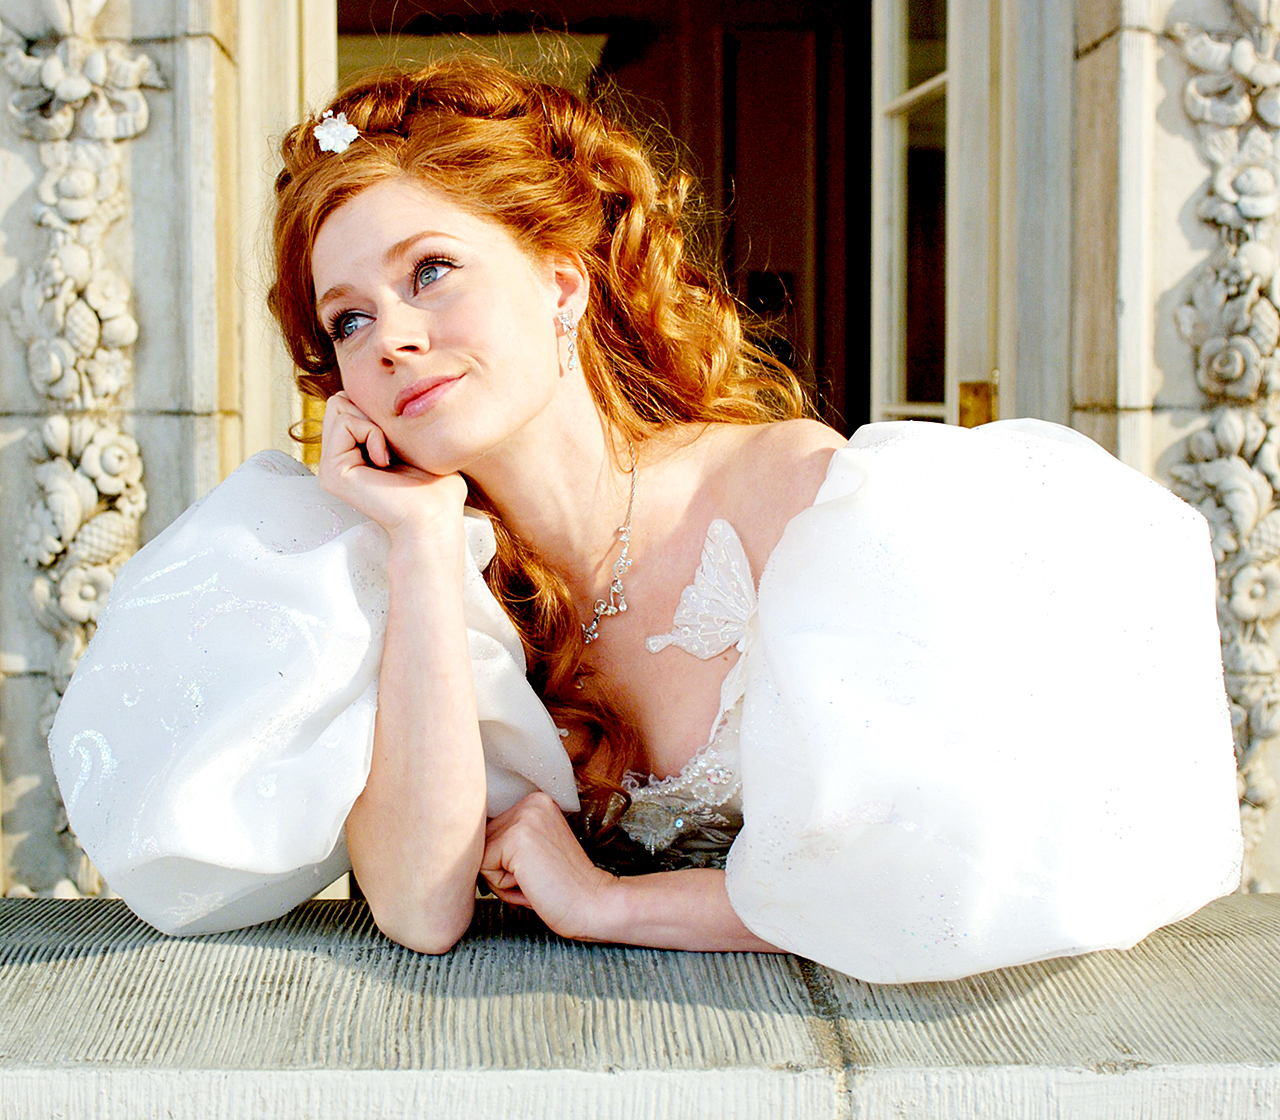 Adams played Giselle in 2007's Enchanted . The Disney film — which combined animation with live-action sequences — costarred Patrick Dempsey , James Marsden , and Susan Sarandon .